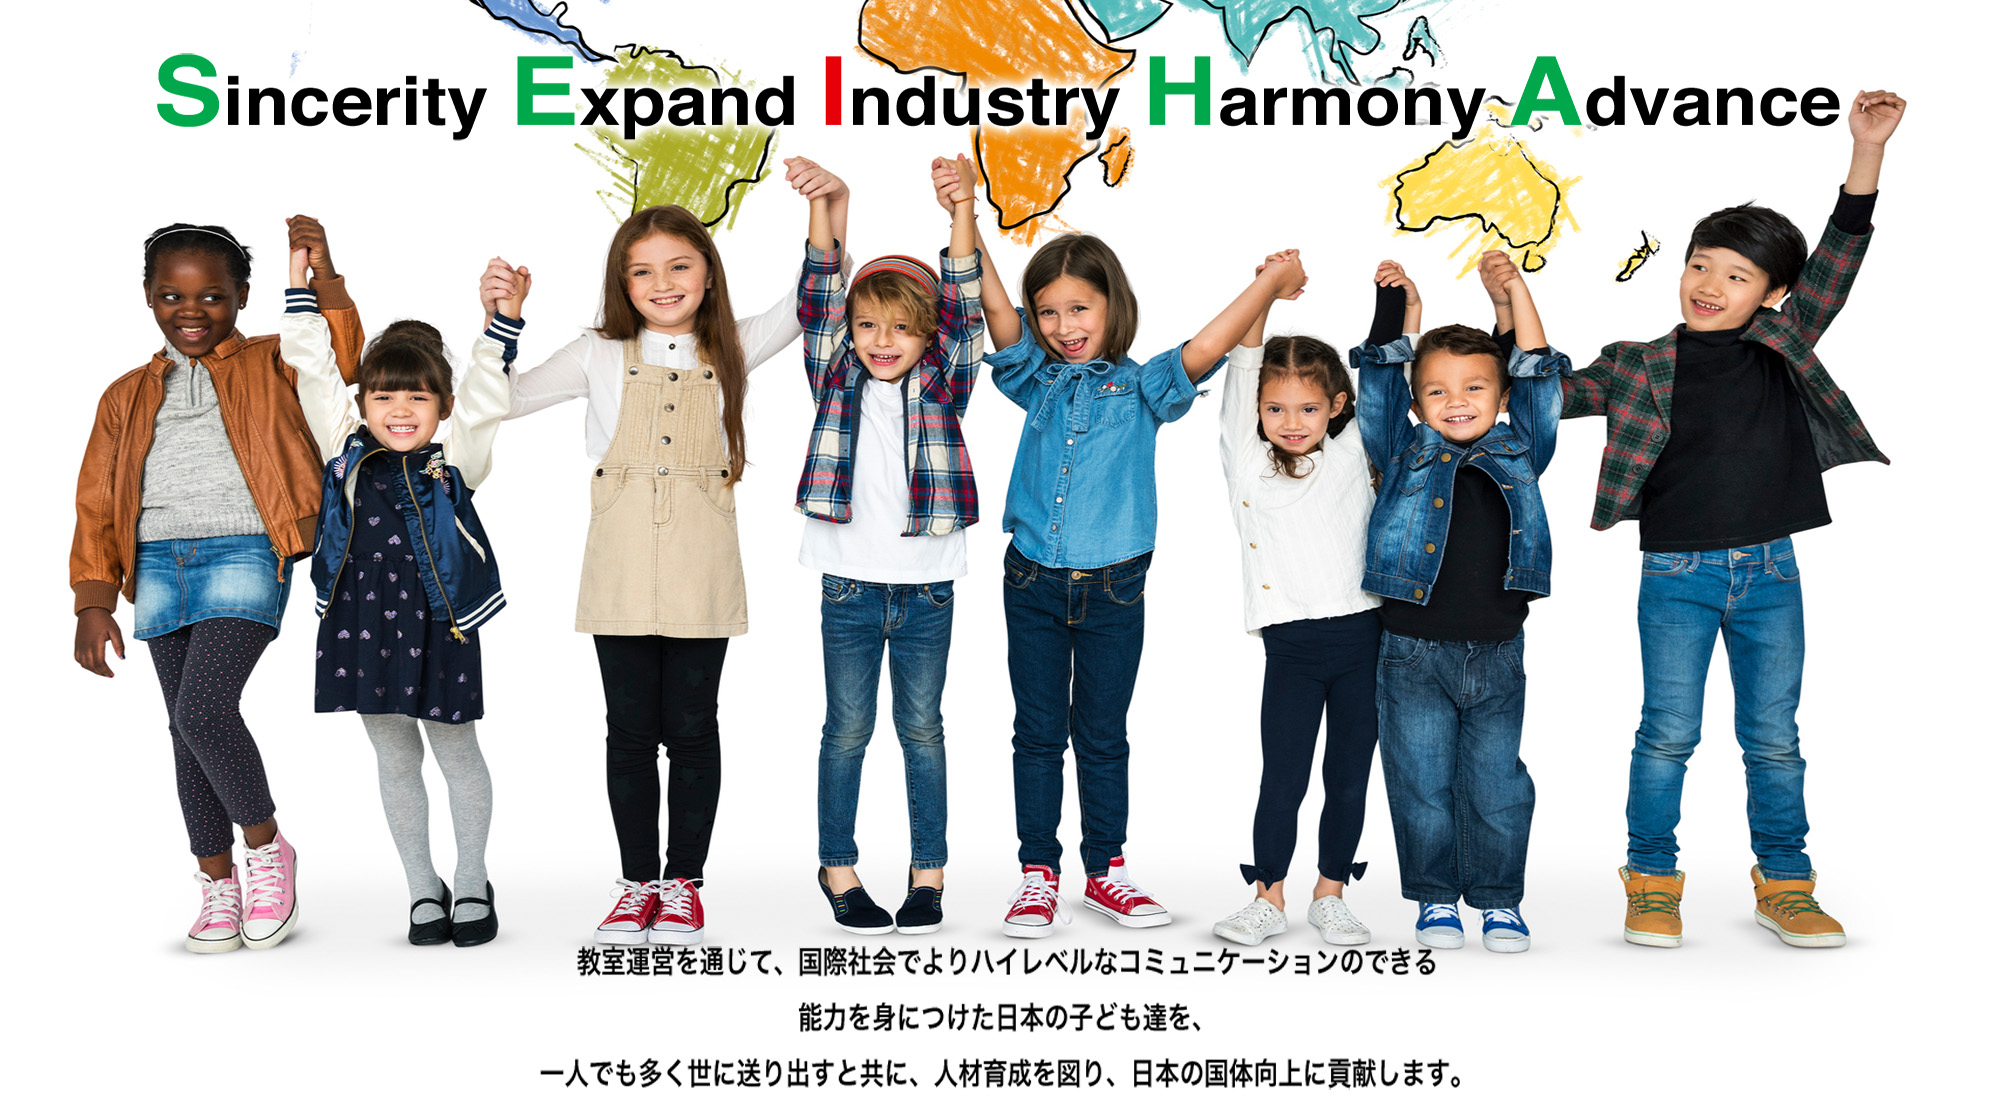 世界をつなぐかけはしに sincerity expand industry harmony advance